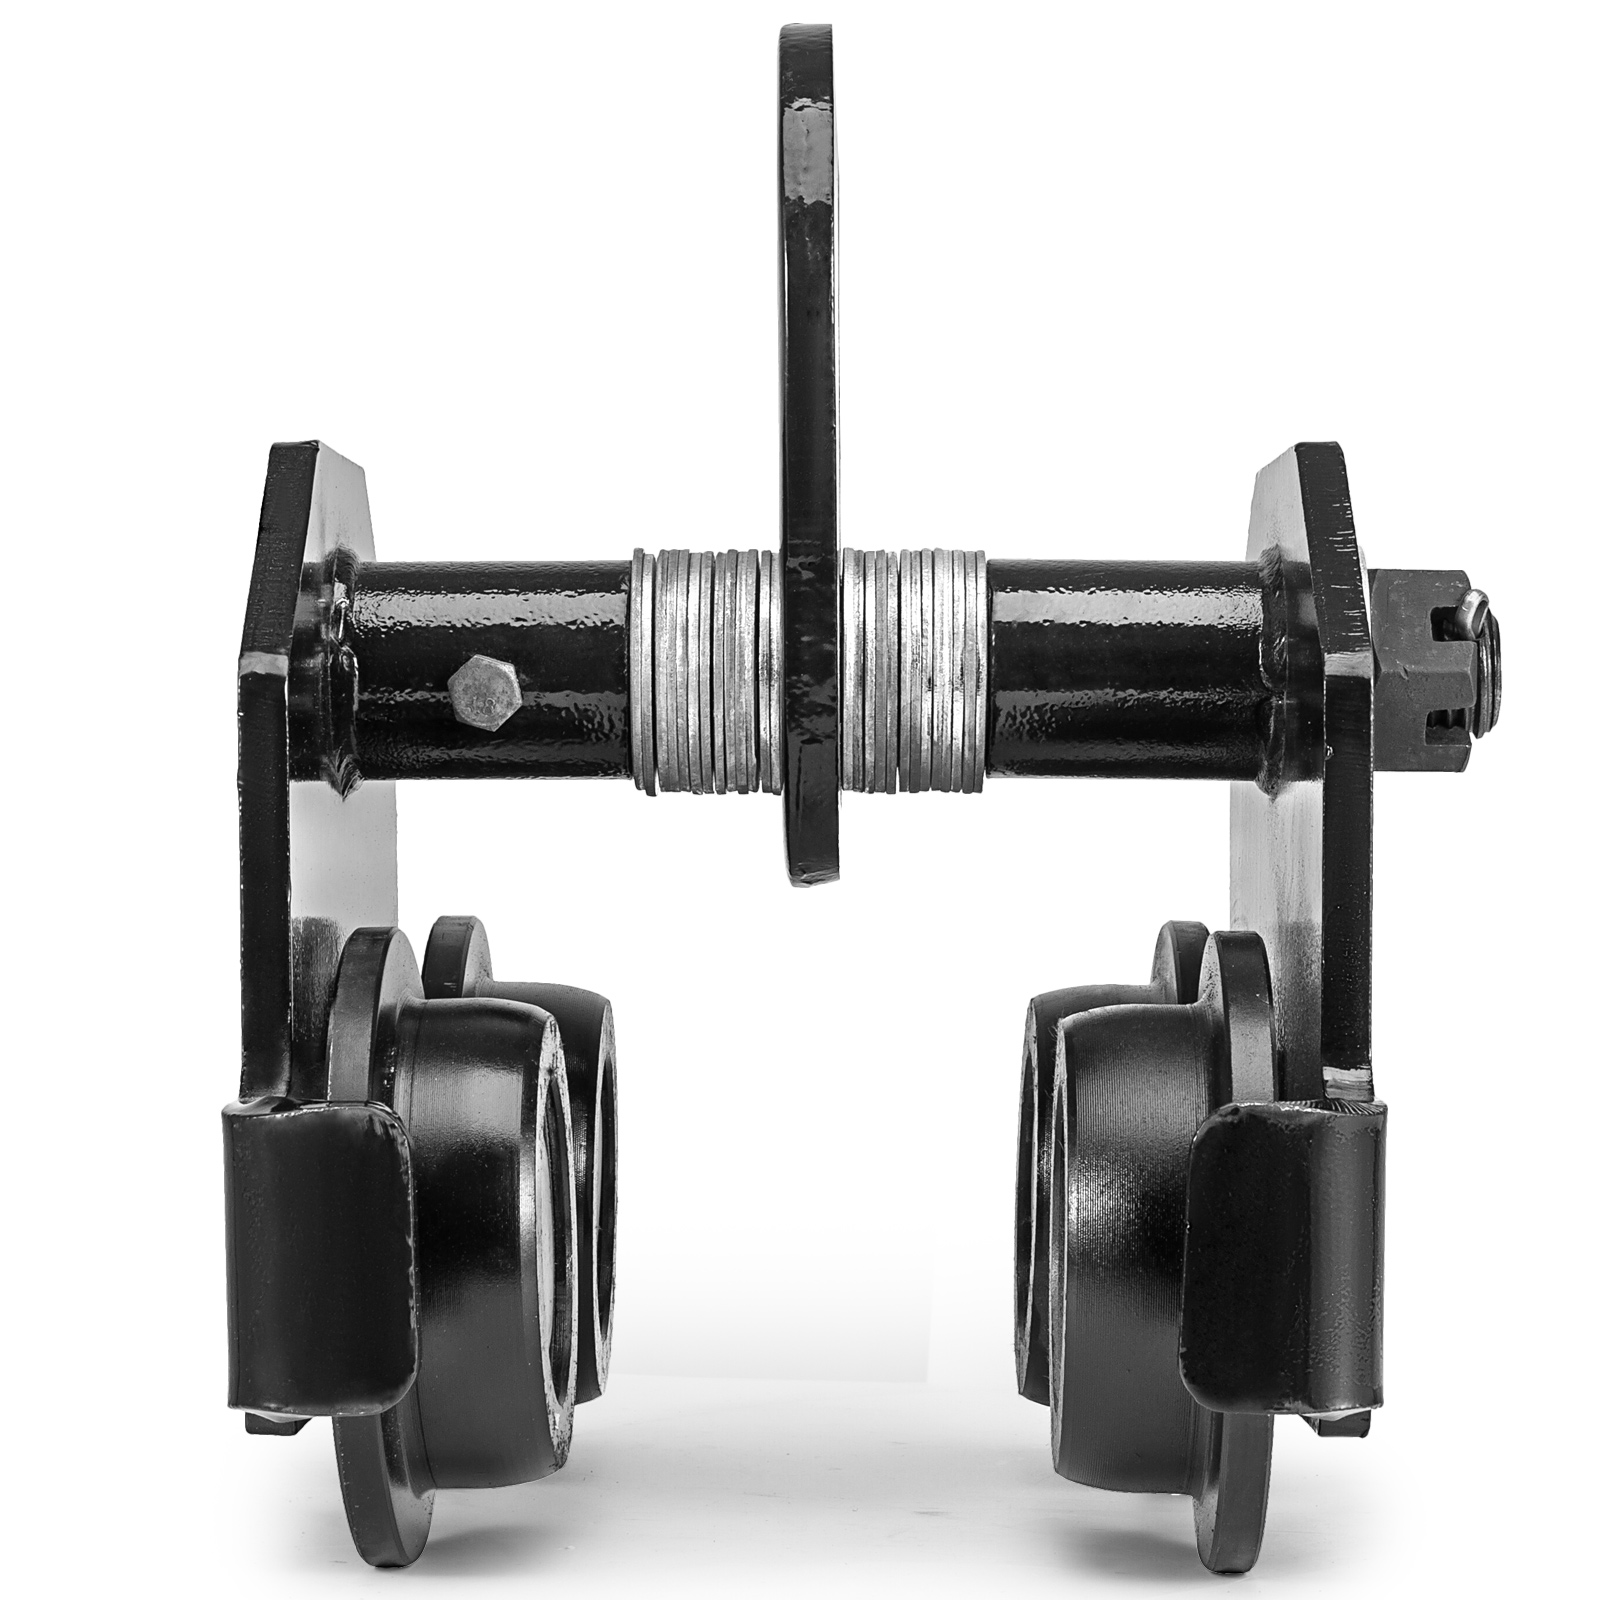 0-5T-2T-3T-Ton-Push-Beam-Trolley-For-Heavy-Loads-To-6600-Lb-Fits-Straight-I-Beam miniature 75